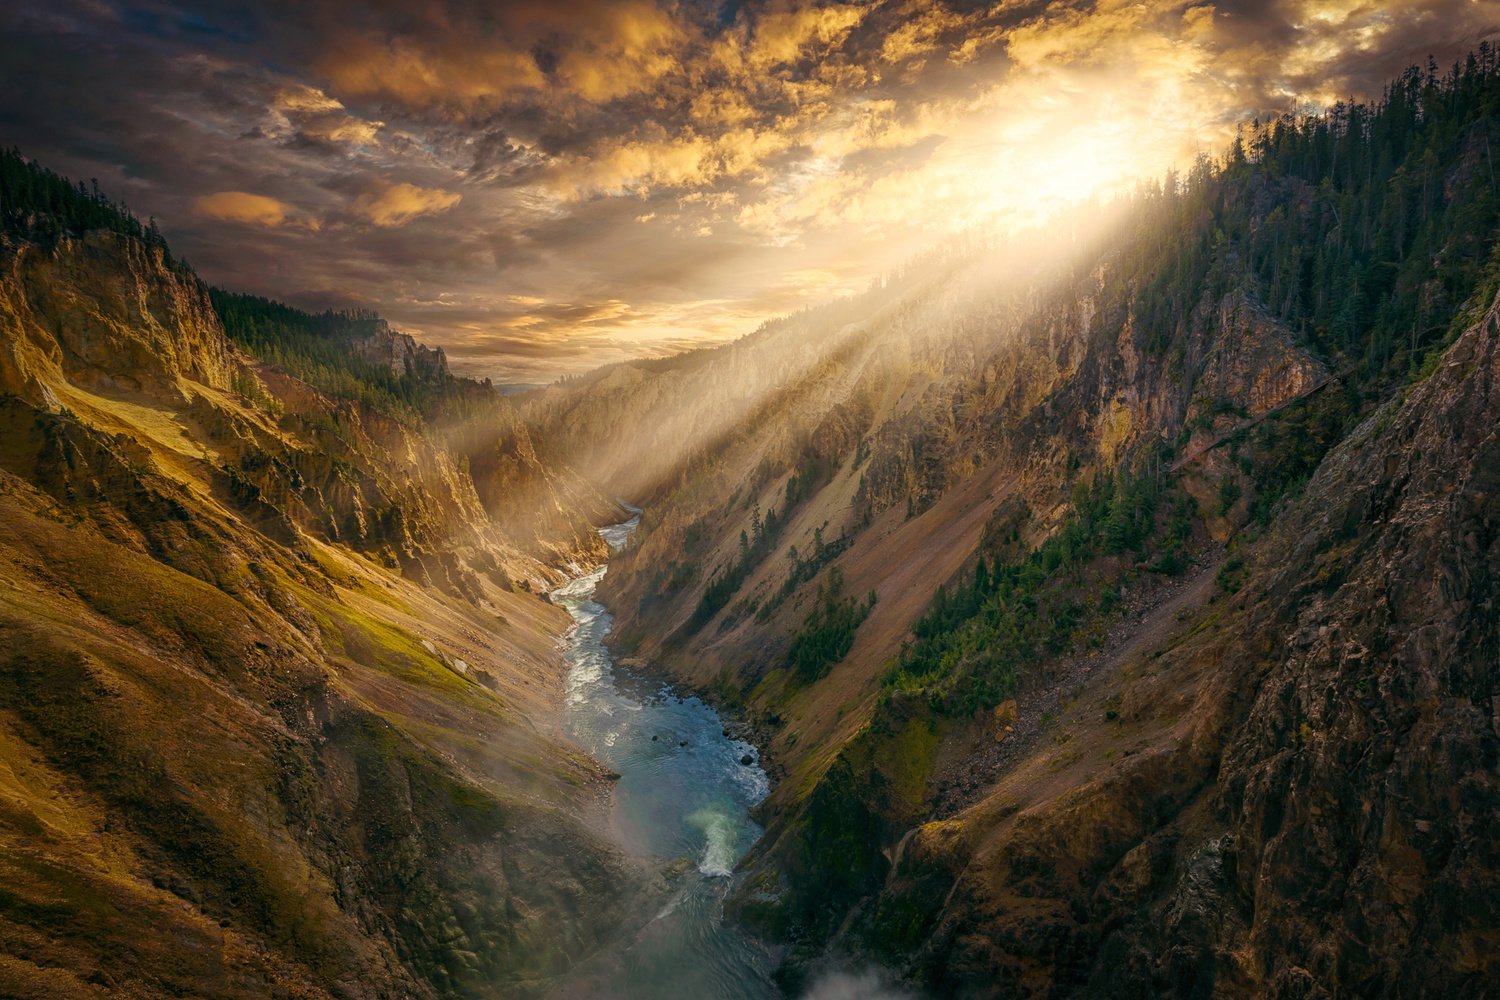 early morning shot of yellowstone canyon with a dramatic sky